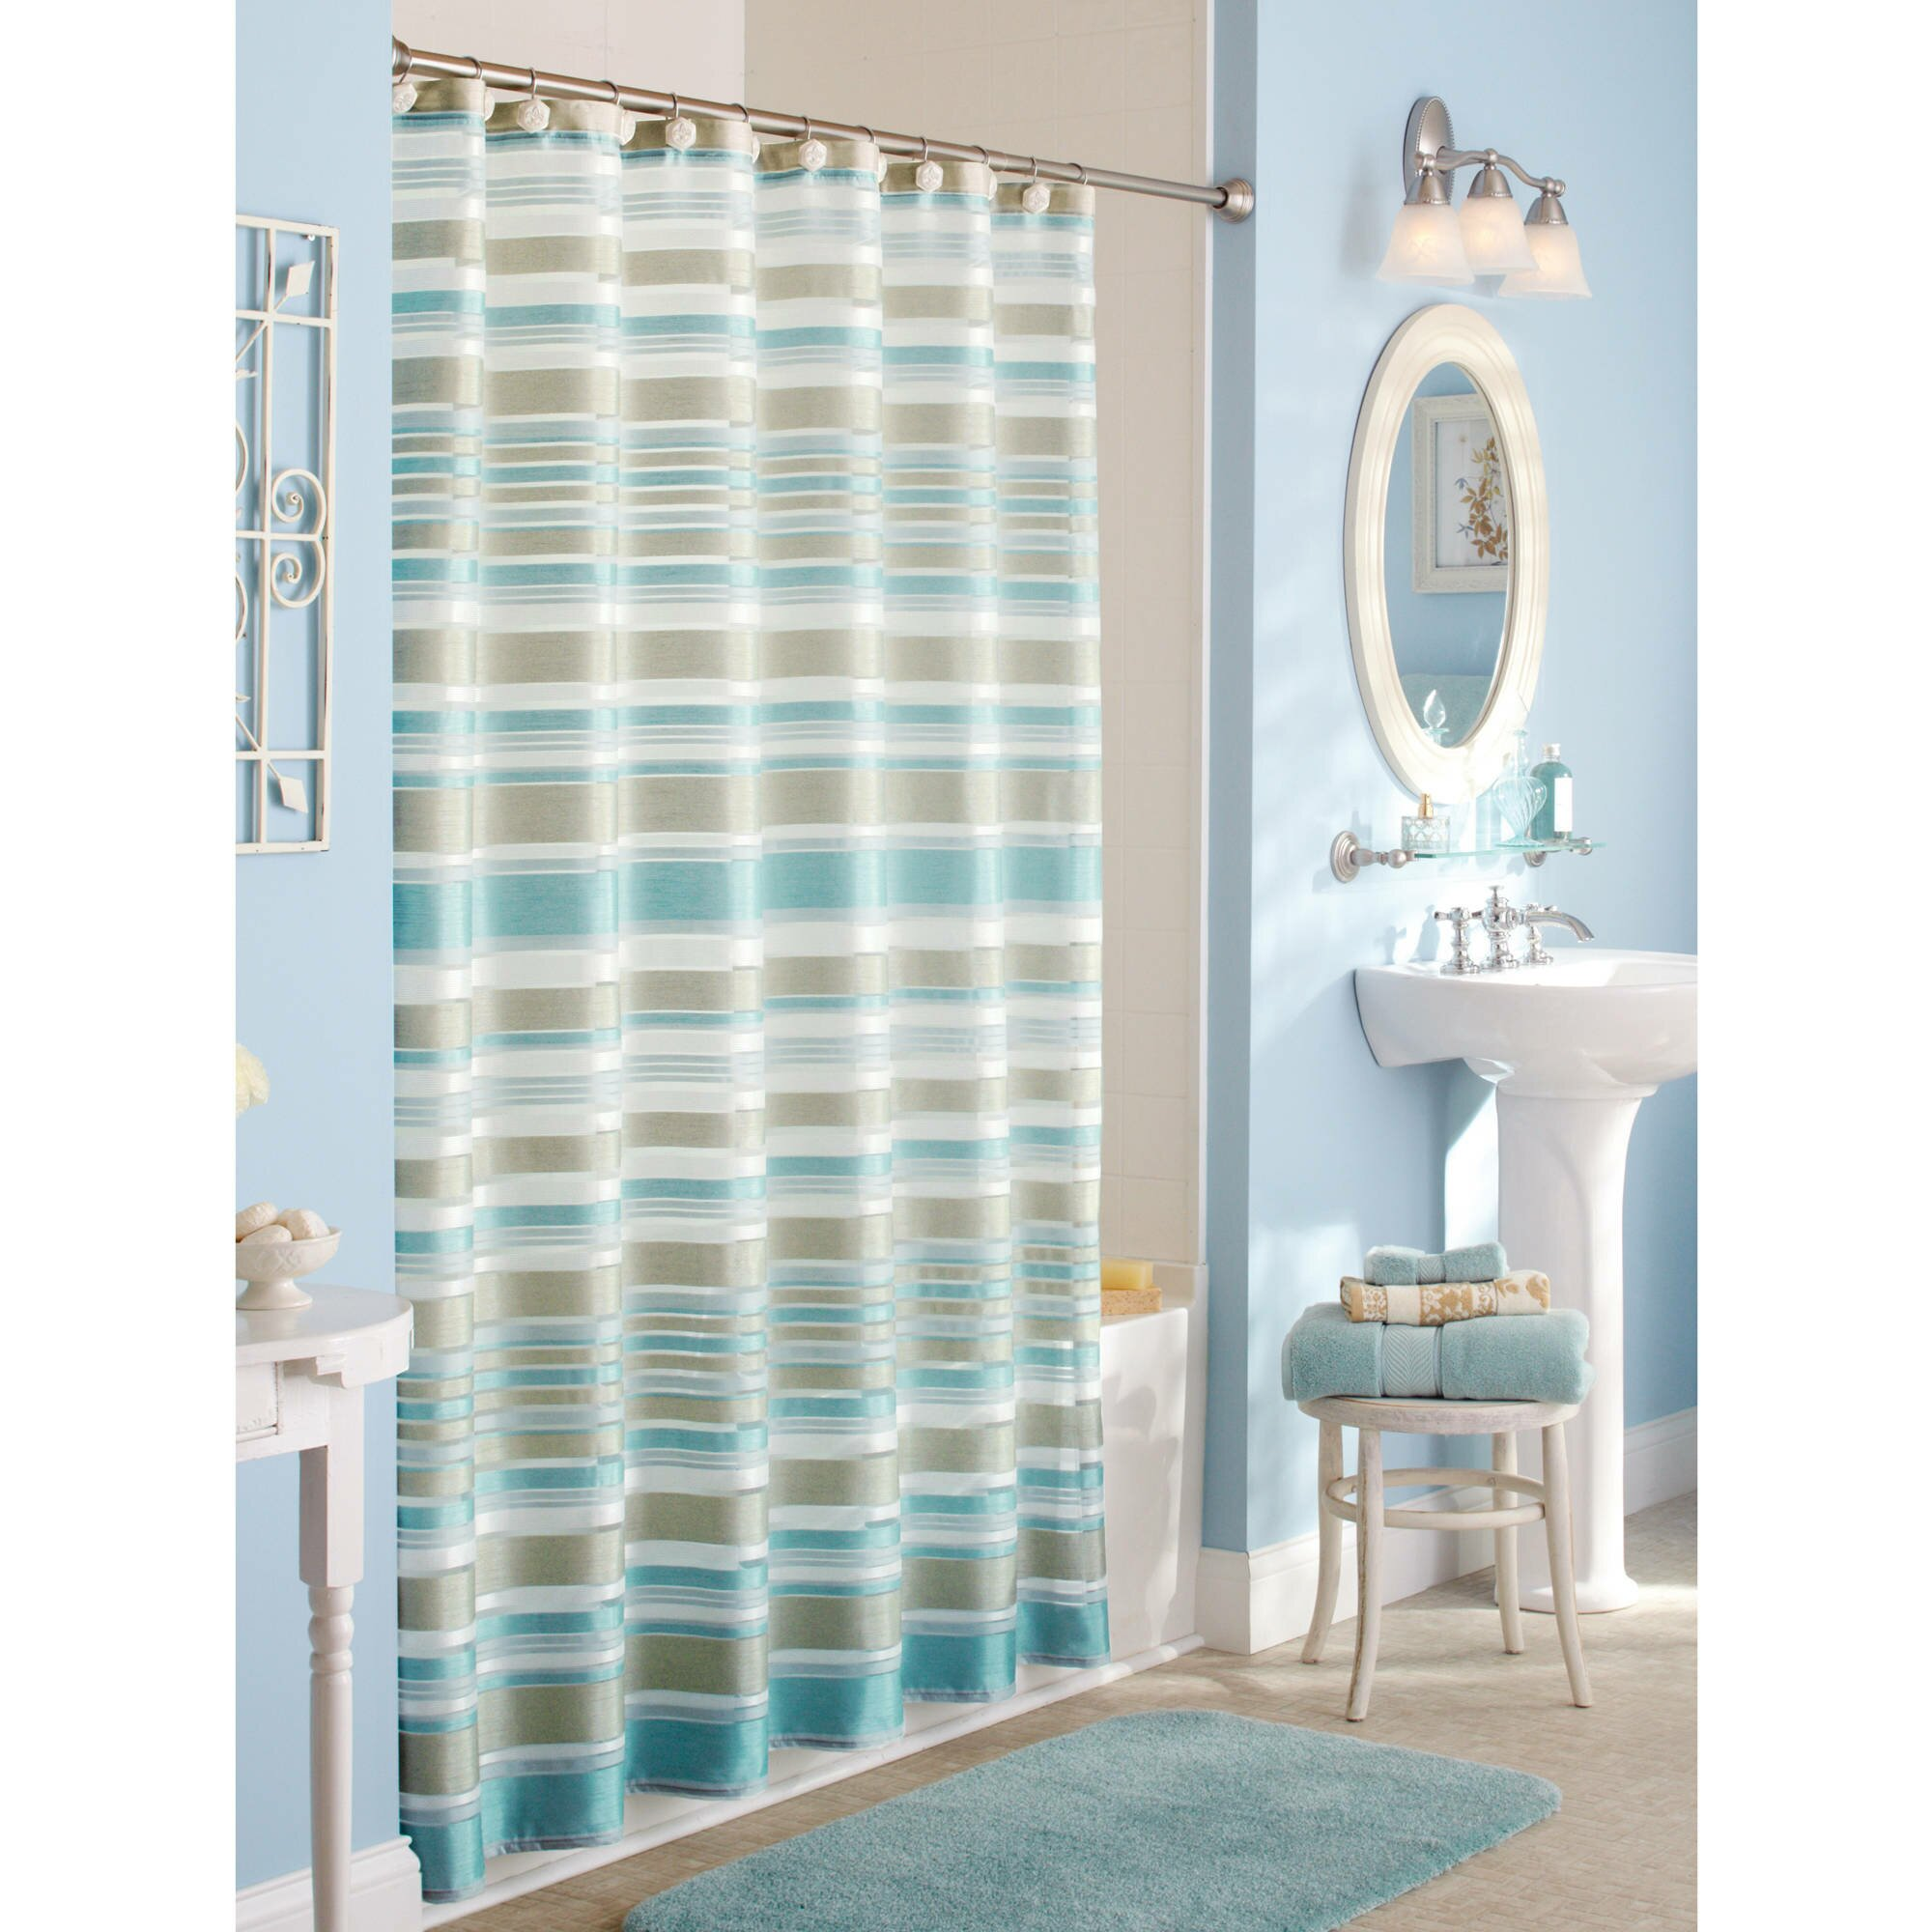 Wal Mart Shower Curtain | Corner Shower Curtain Rod Walmart | Walmart Shower  Curtain